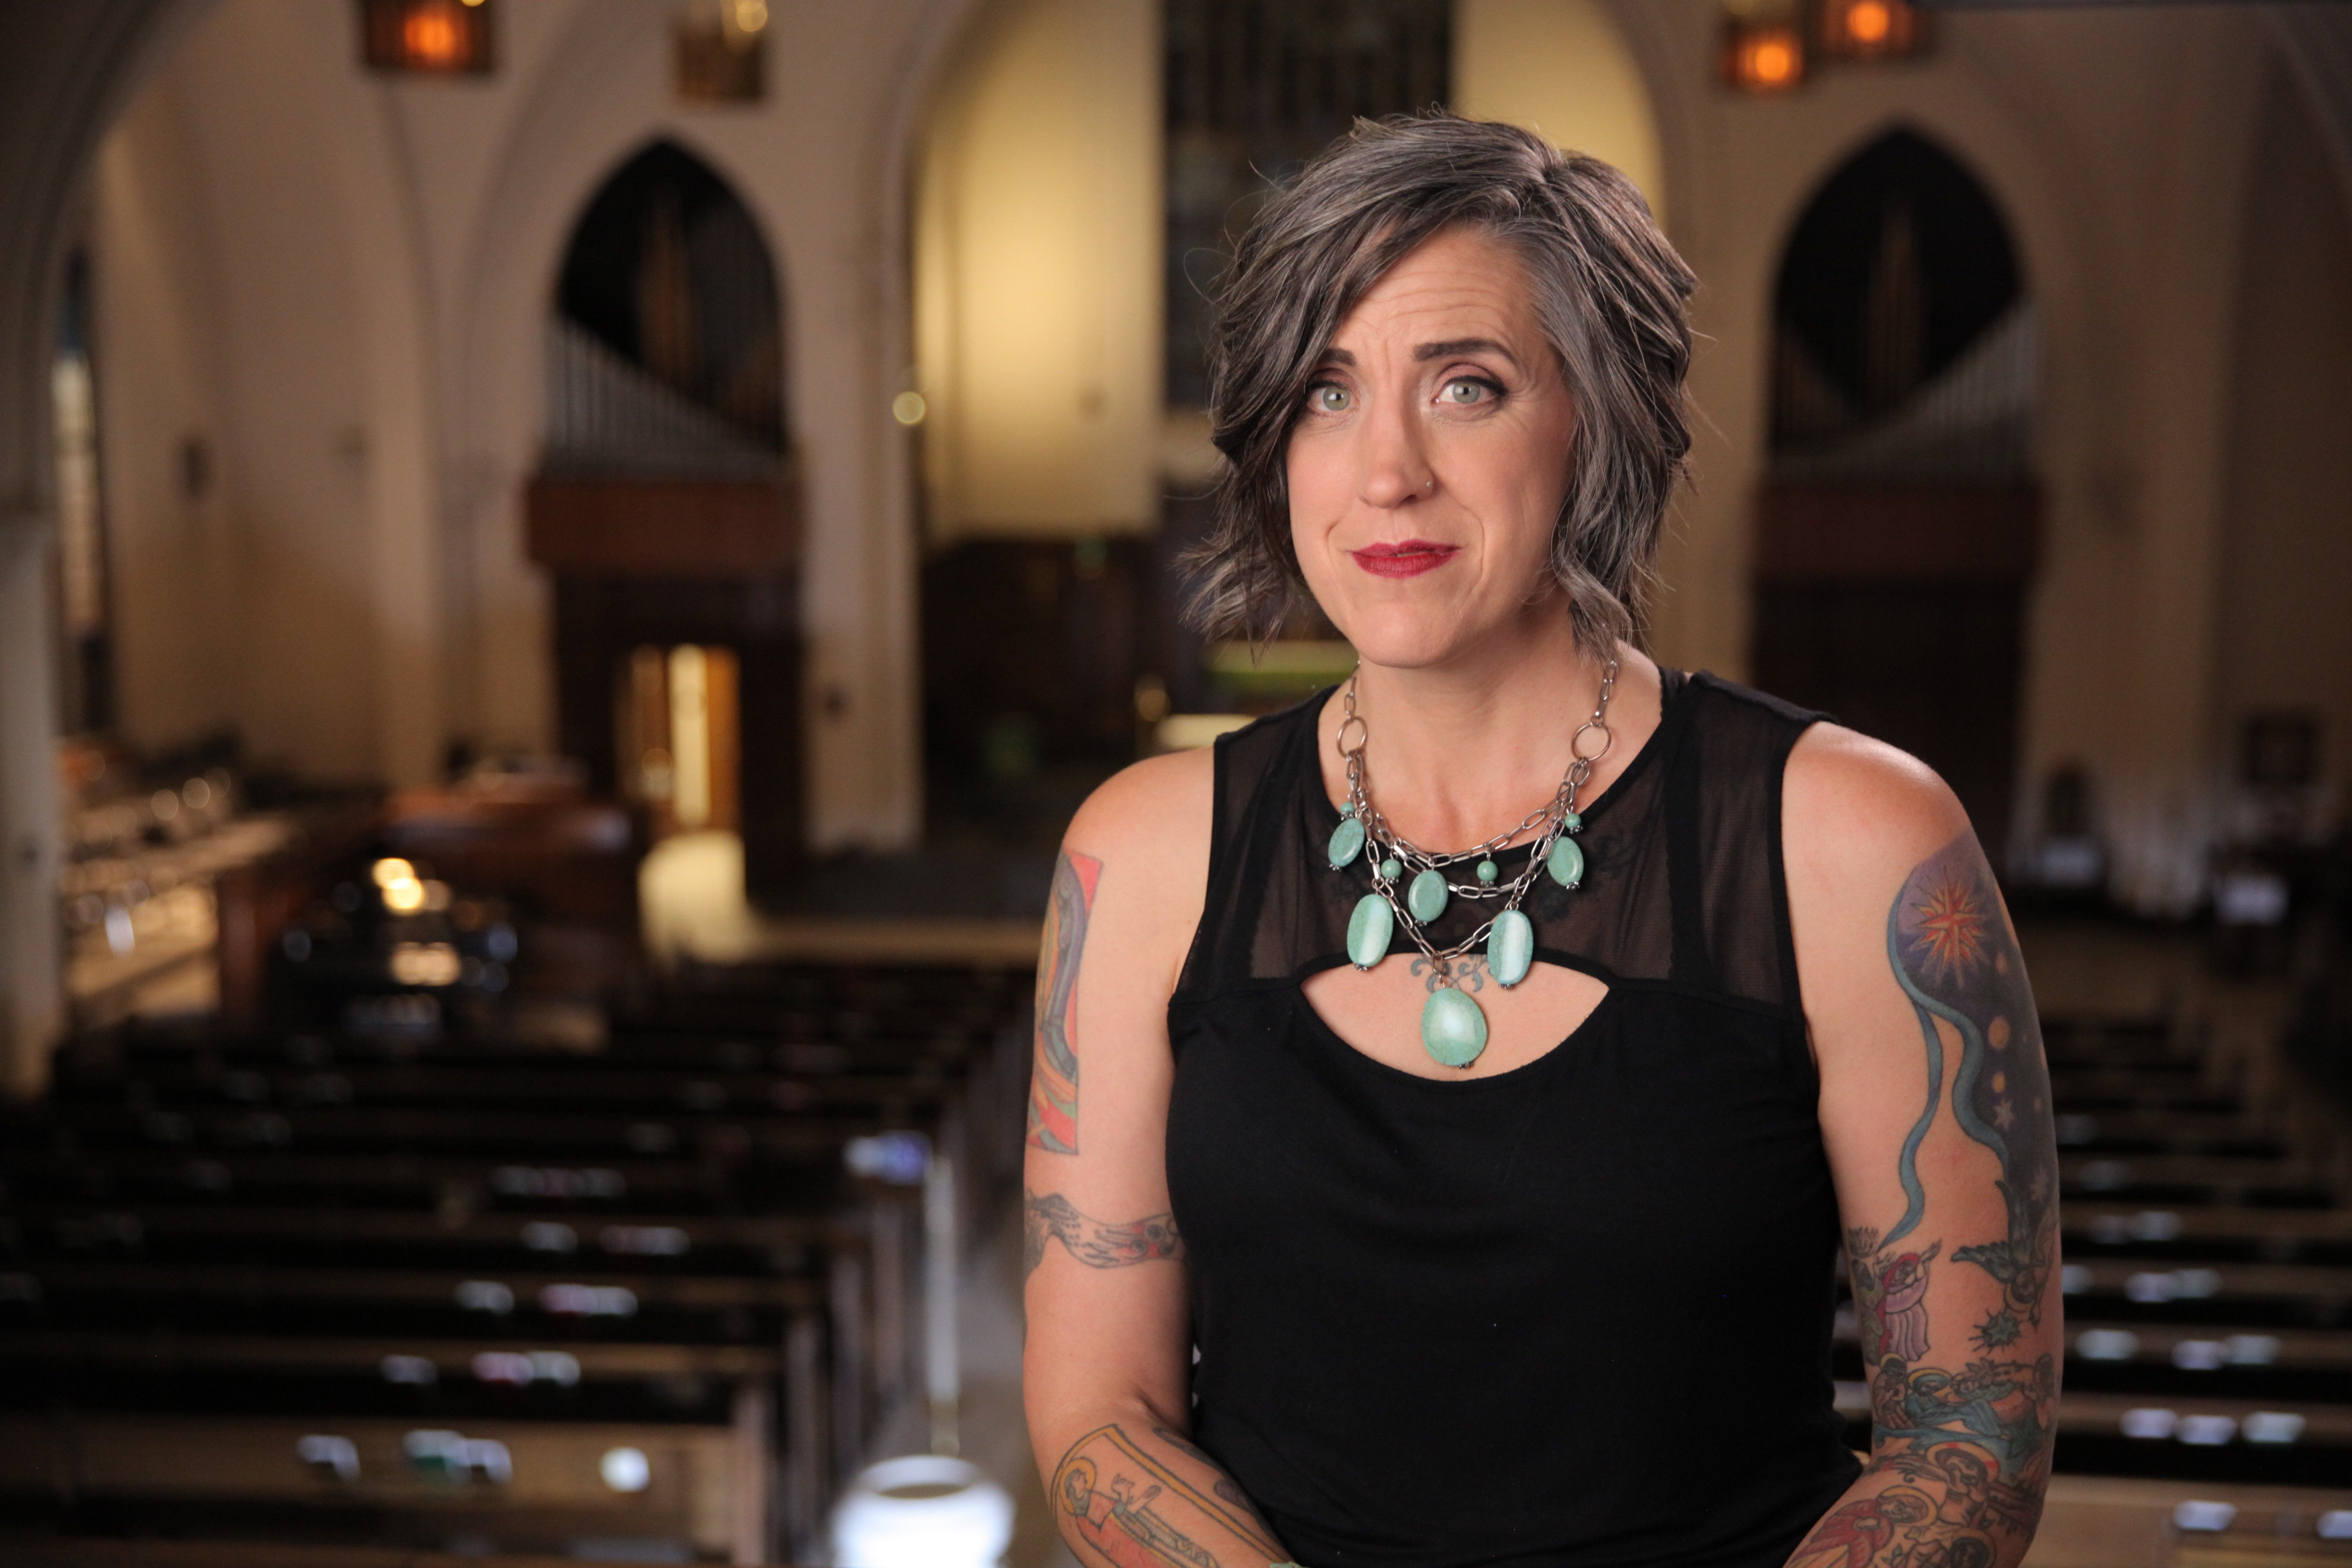 Nadia Bolz-Weber is a Christian author and the former pastor of House for All Sinners and Saints, a Lutheran congregation in